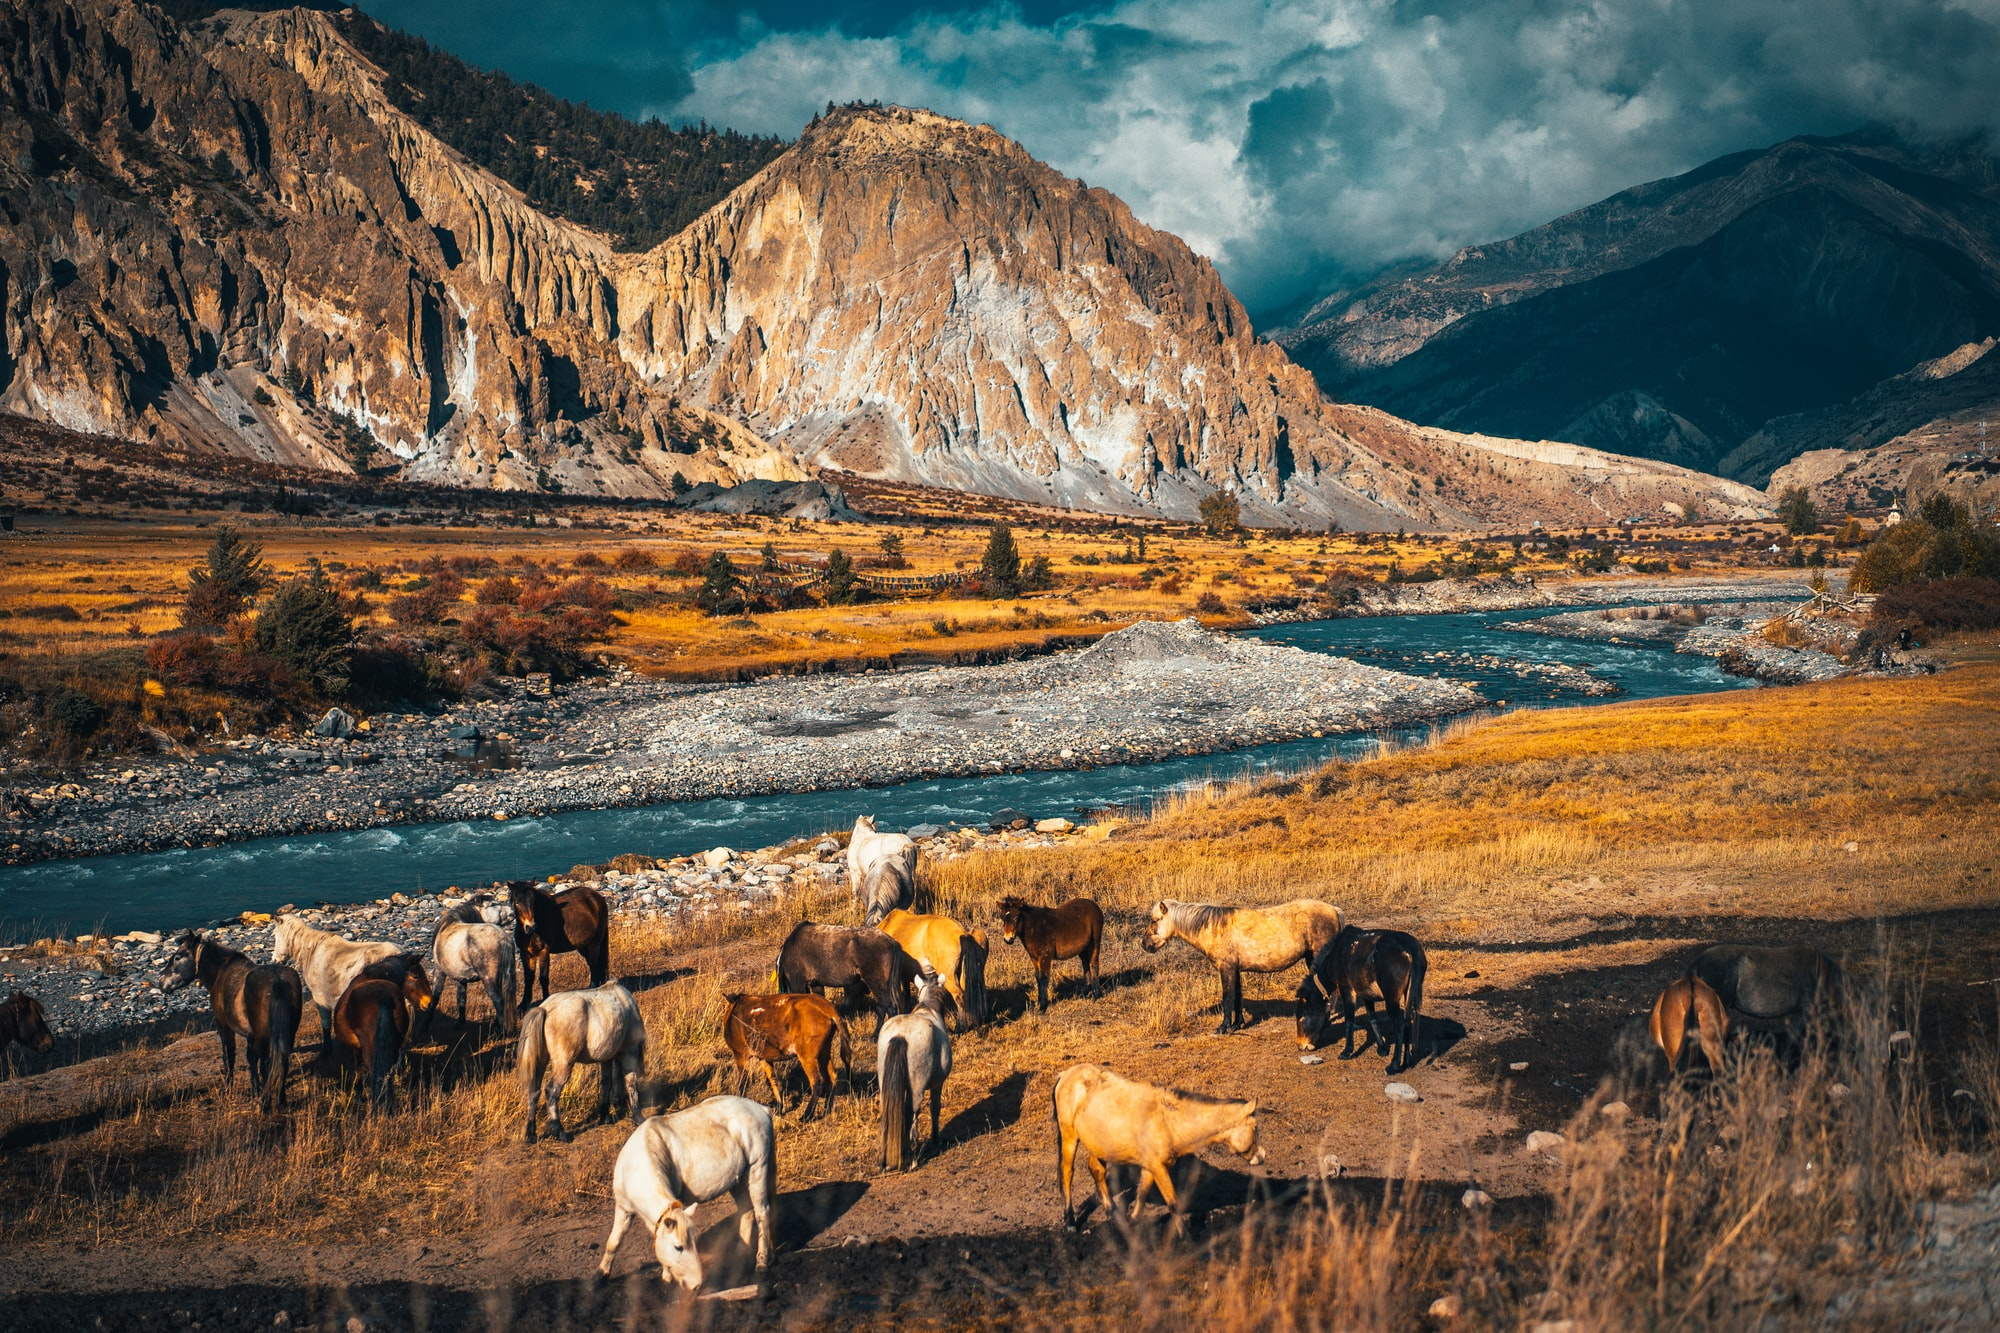 Horses and Sunset above valley in the Himalaya mountains, Nepal